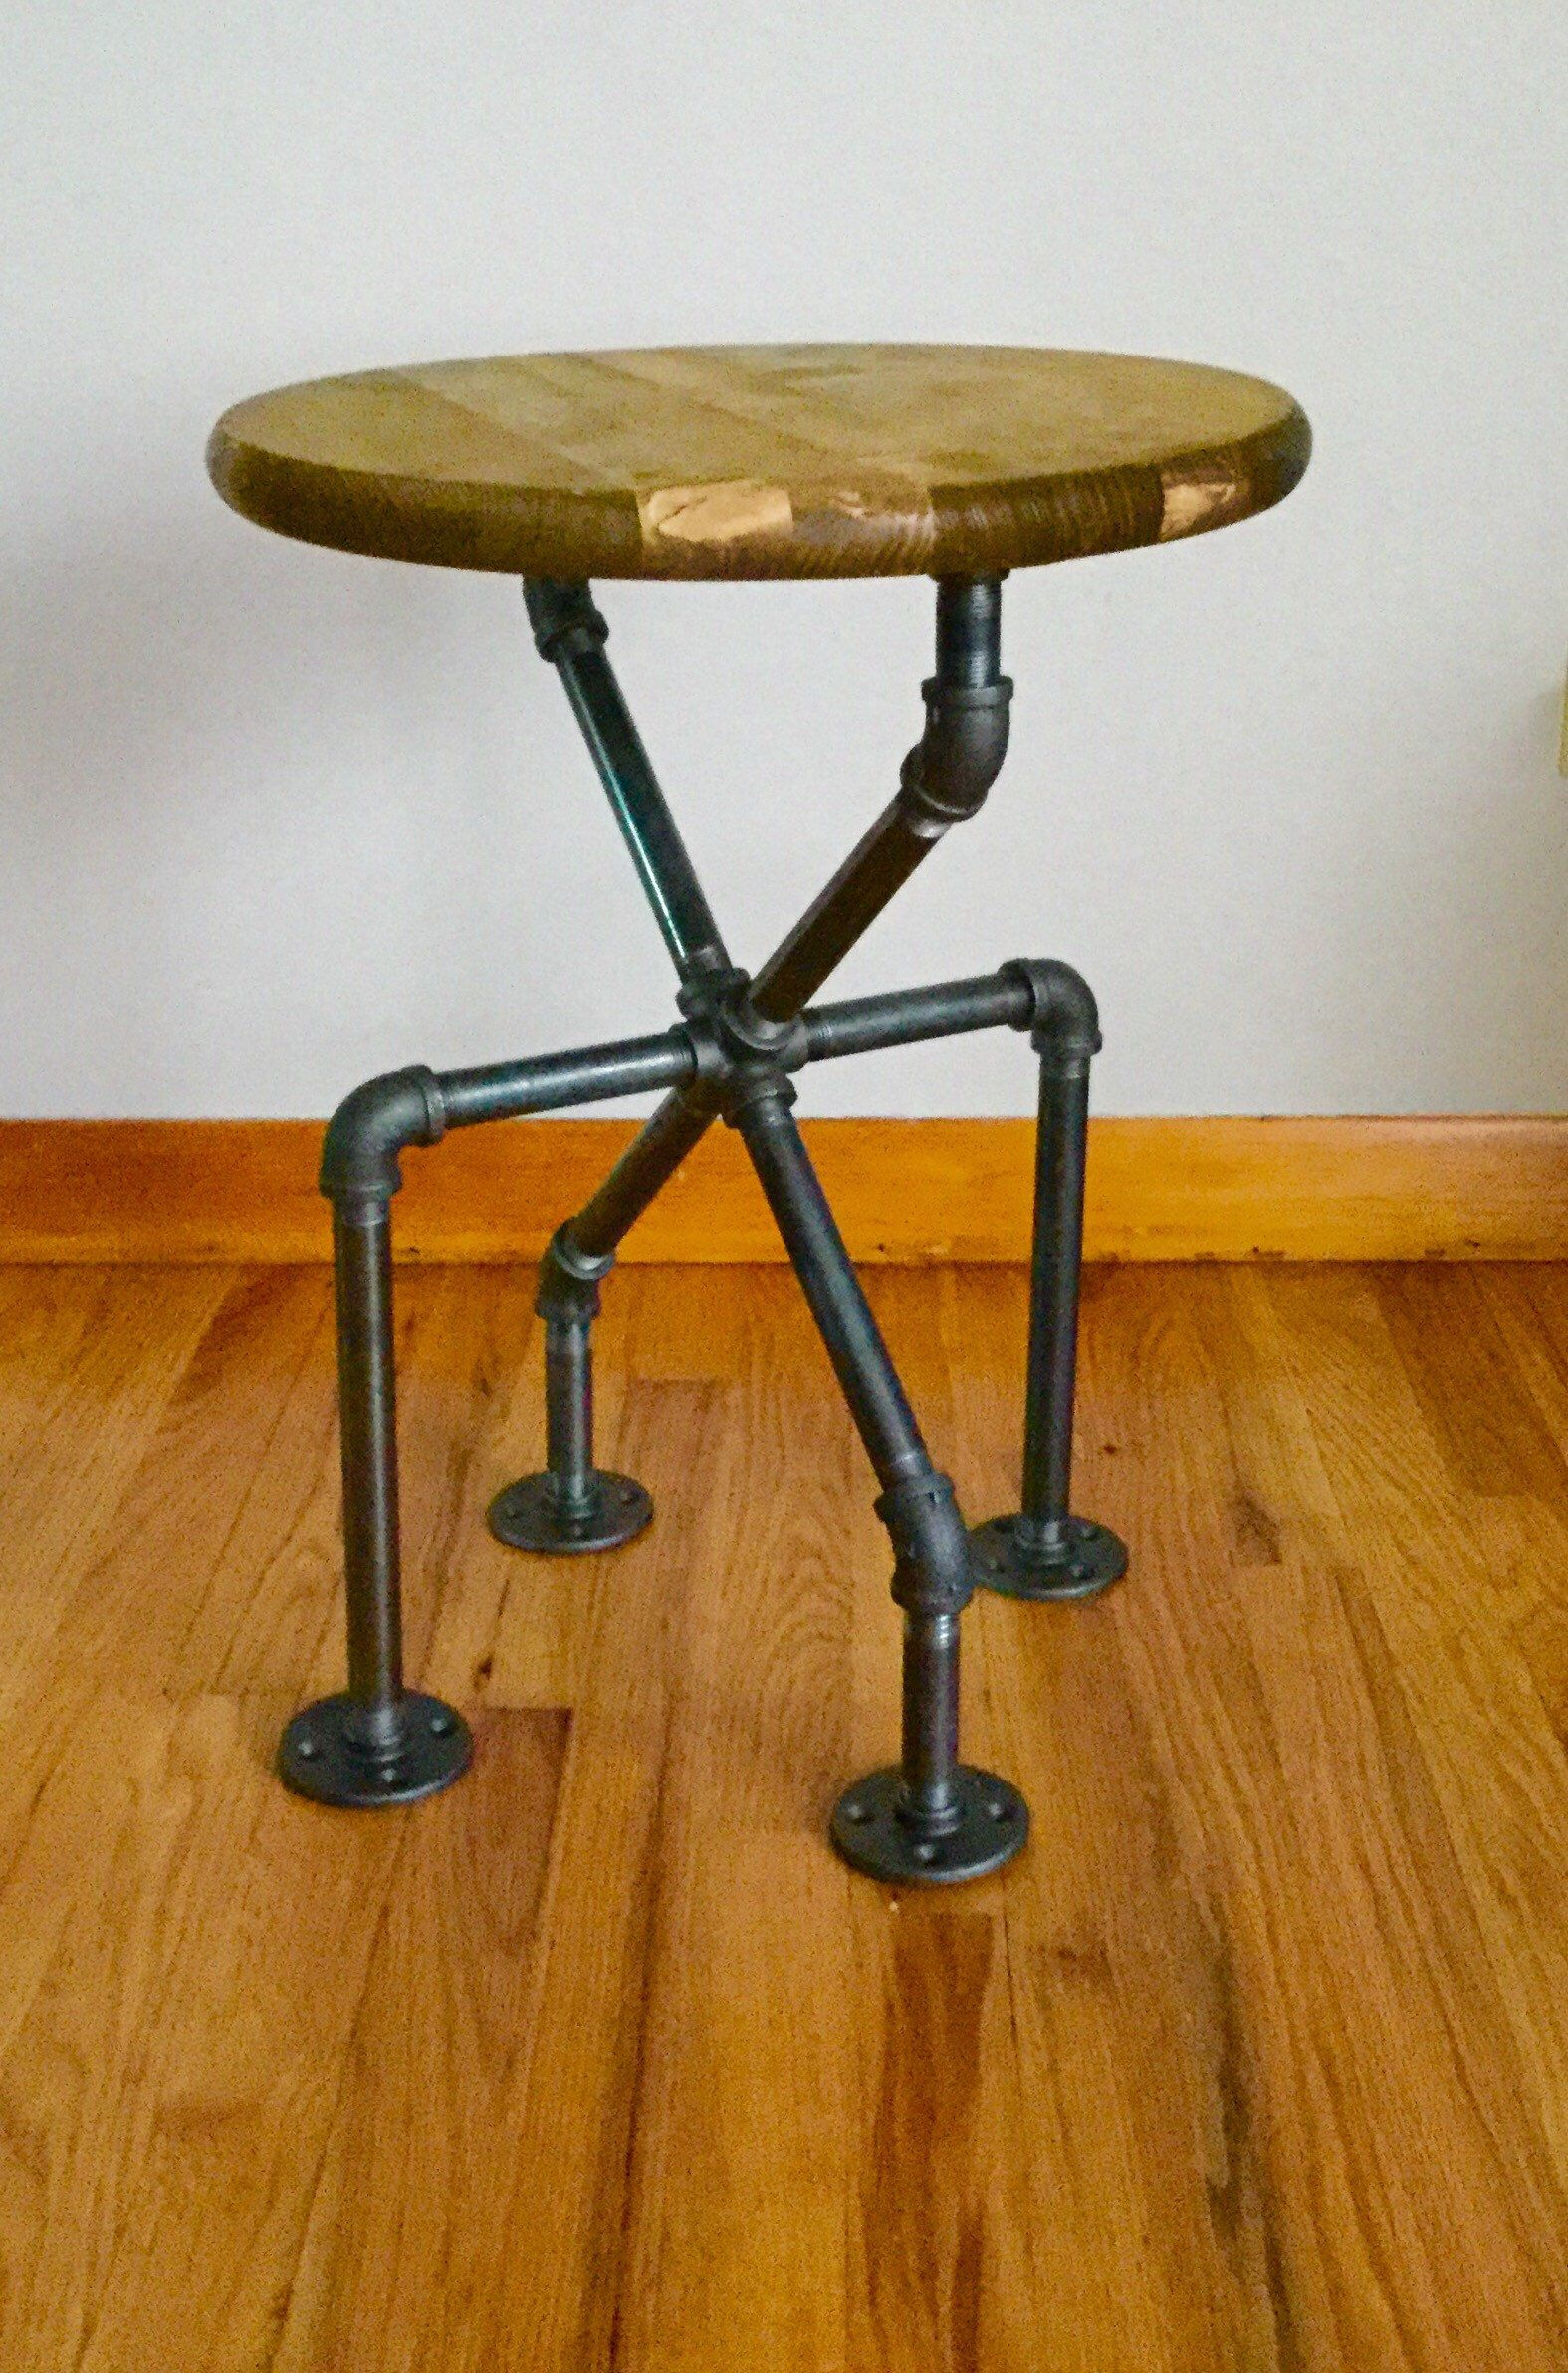 Superb Pin By Pipeline Design Studio On Industrial Design In 2019 Creativecarmelina Interior Chair Design Creativecarmelinacom